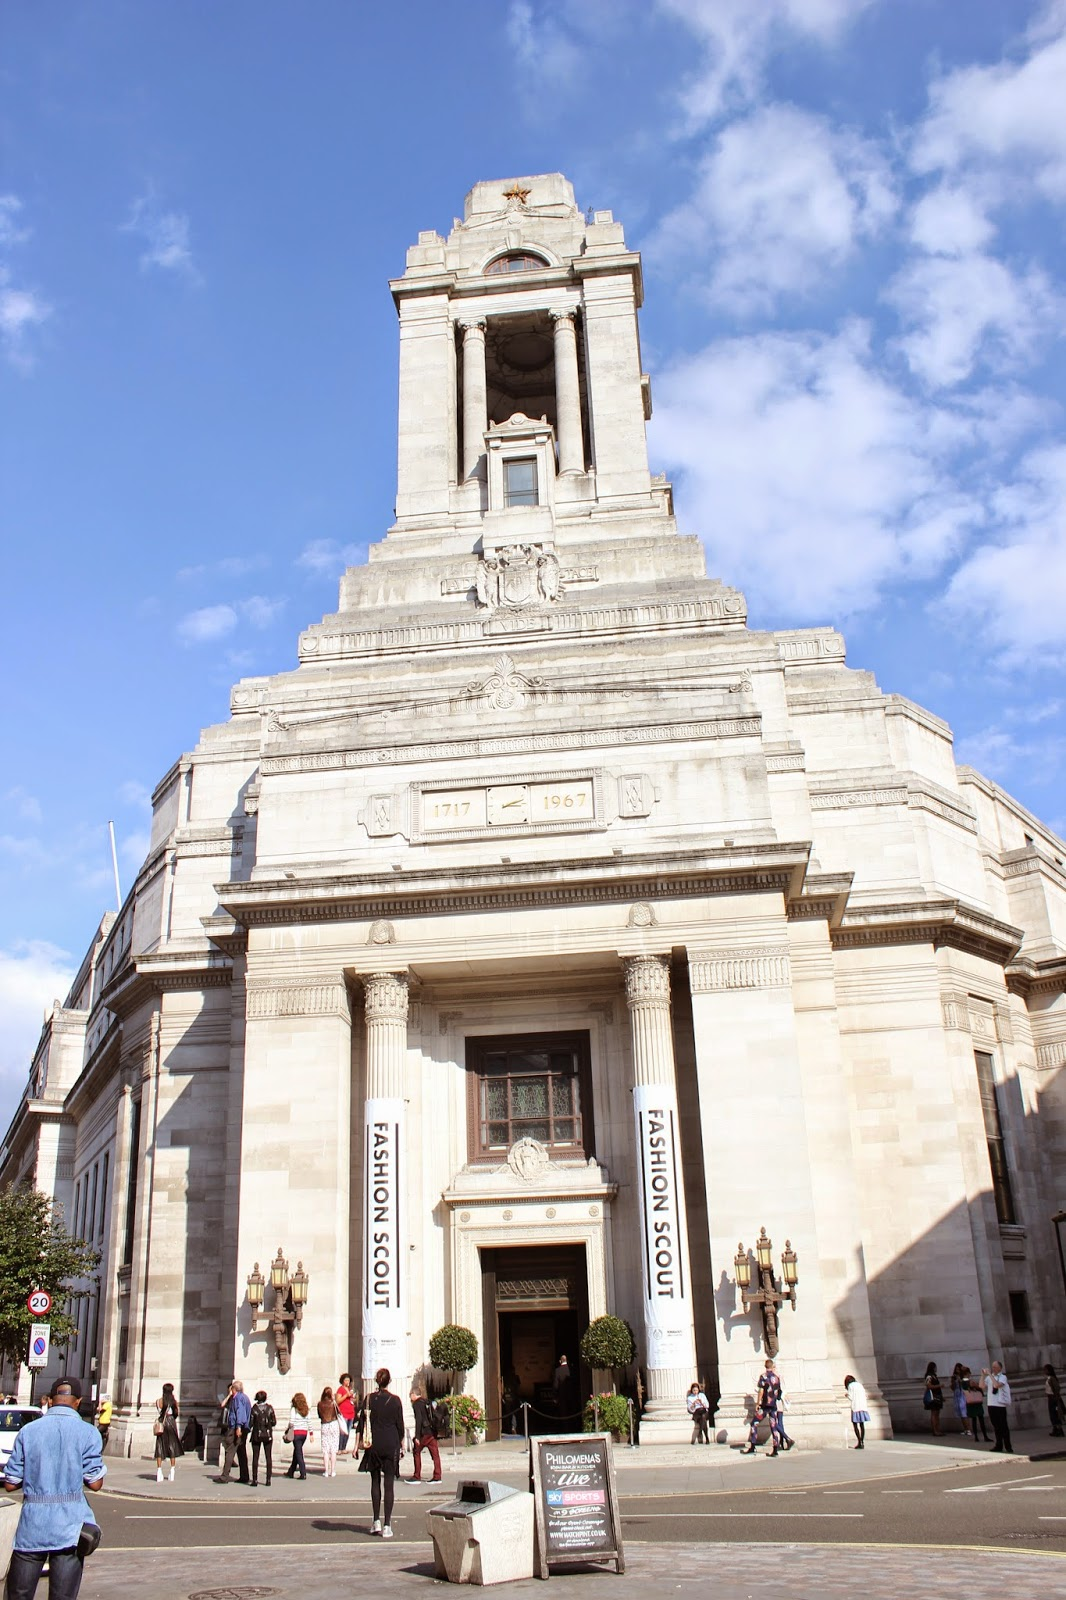 london-fashion-week-2014-lfw-spring-summer-2015-freemasons-hall-fashion-scout-building